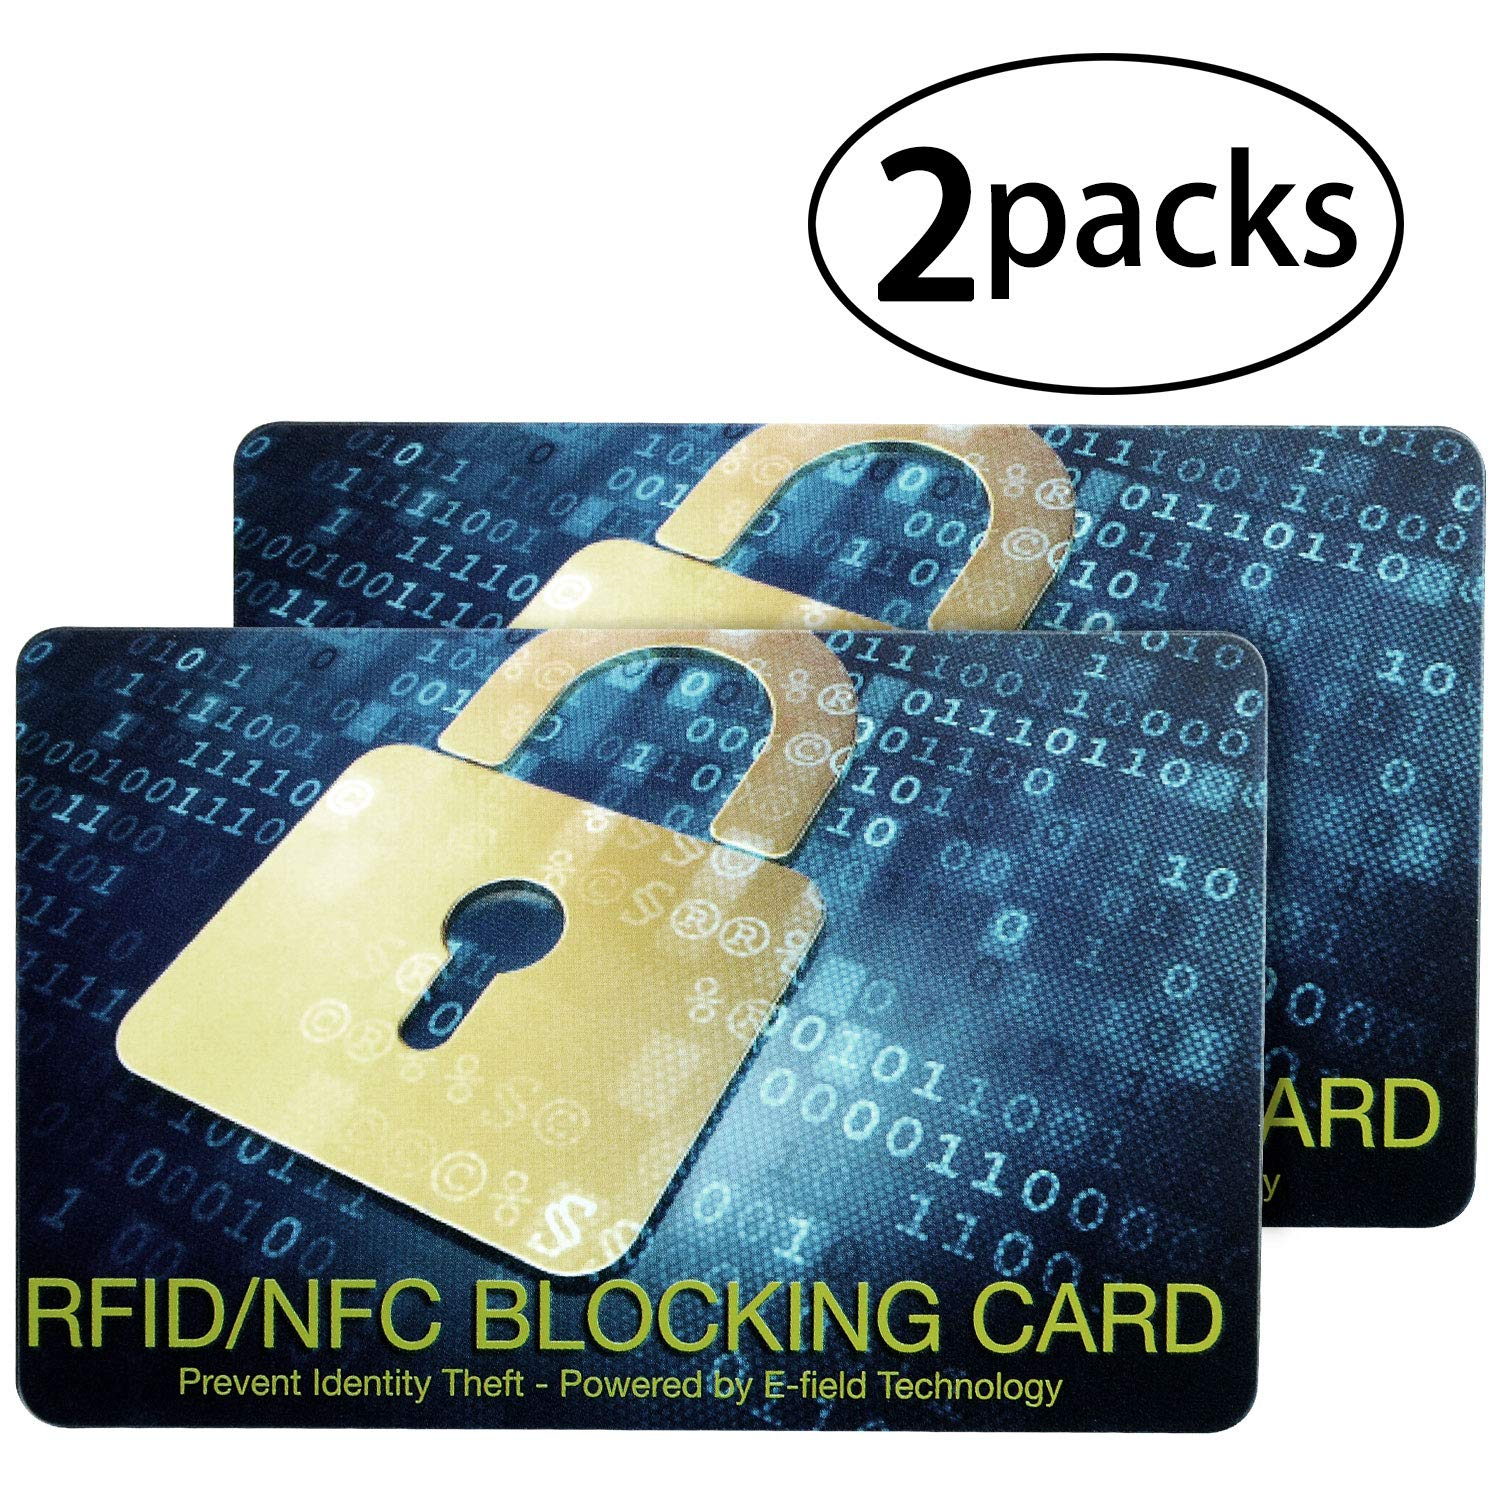 Credit Card Protector-RFID Blocking Shield Guard Cards for Id's, Passports and Chip Bank Cards-Theft Blocking Wallet Protector[2 Packs]